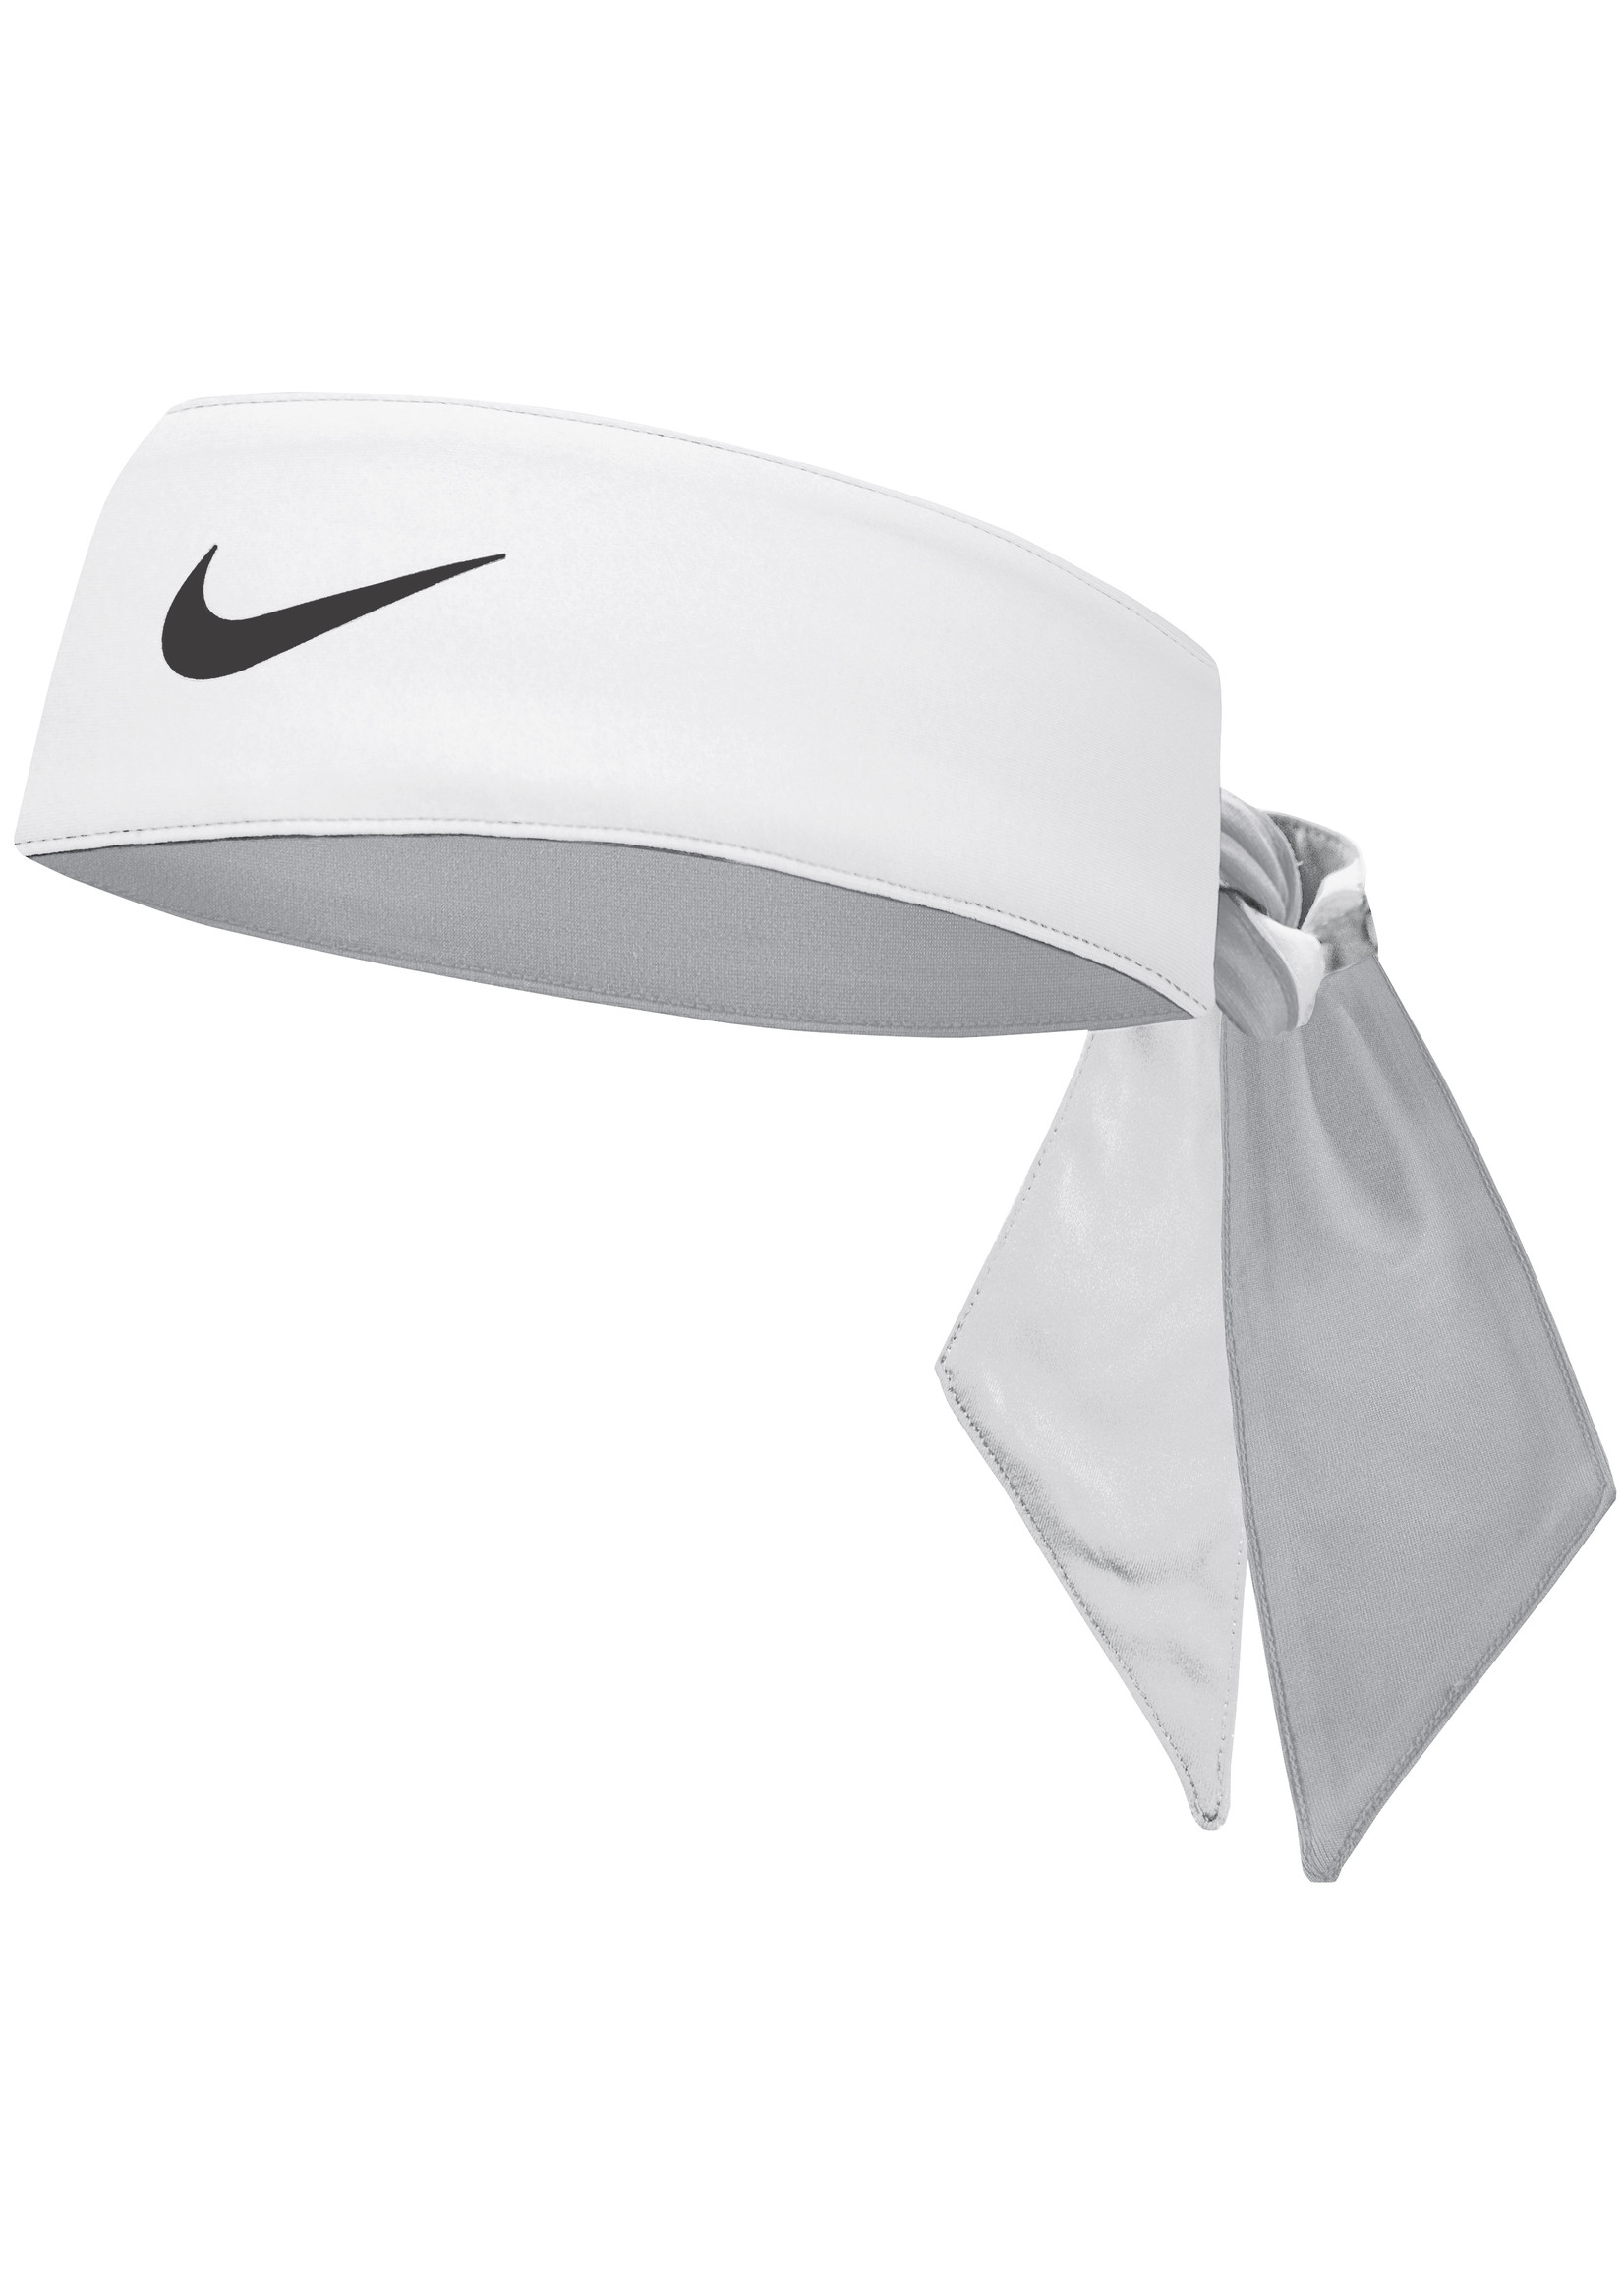 Nike Cooling Head Tie White/Wolf Grey